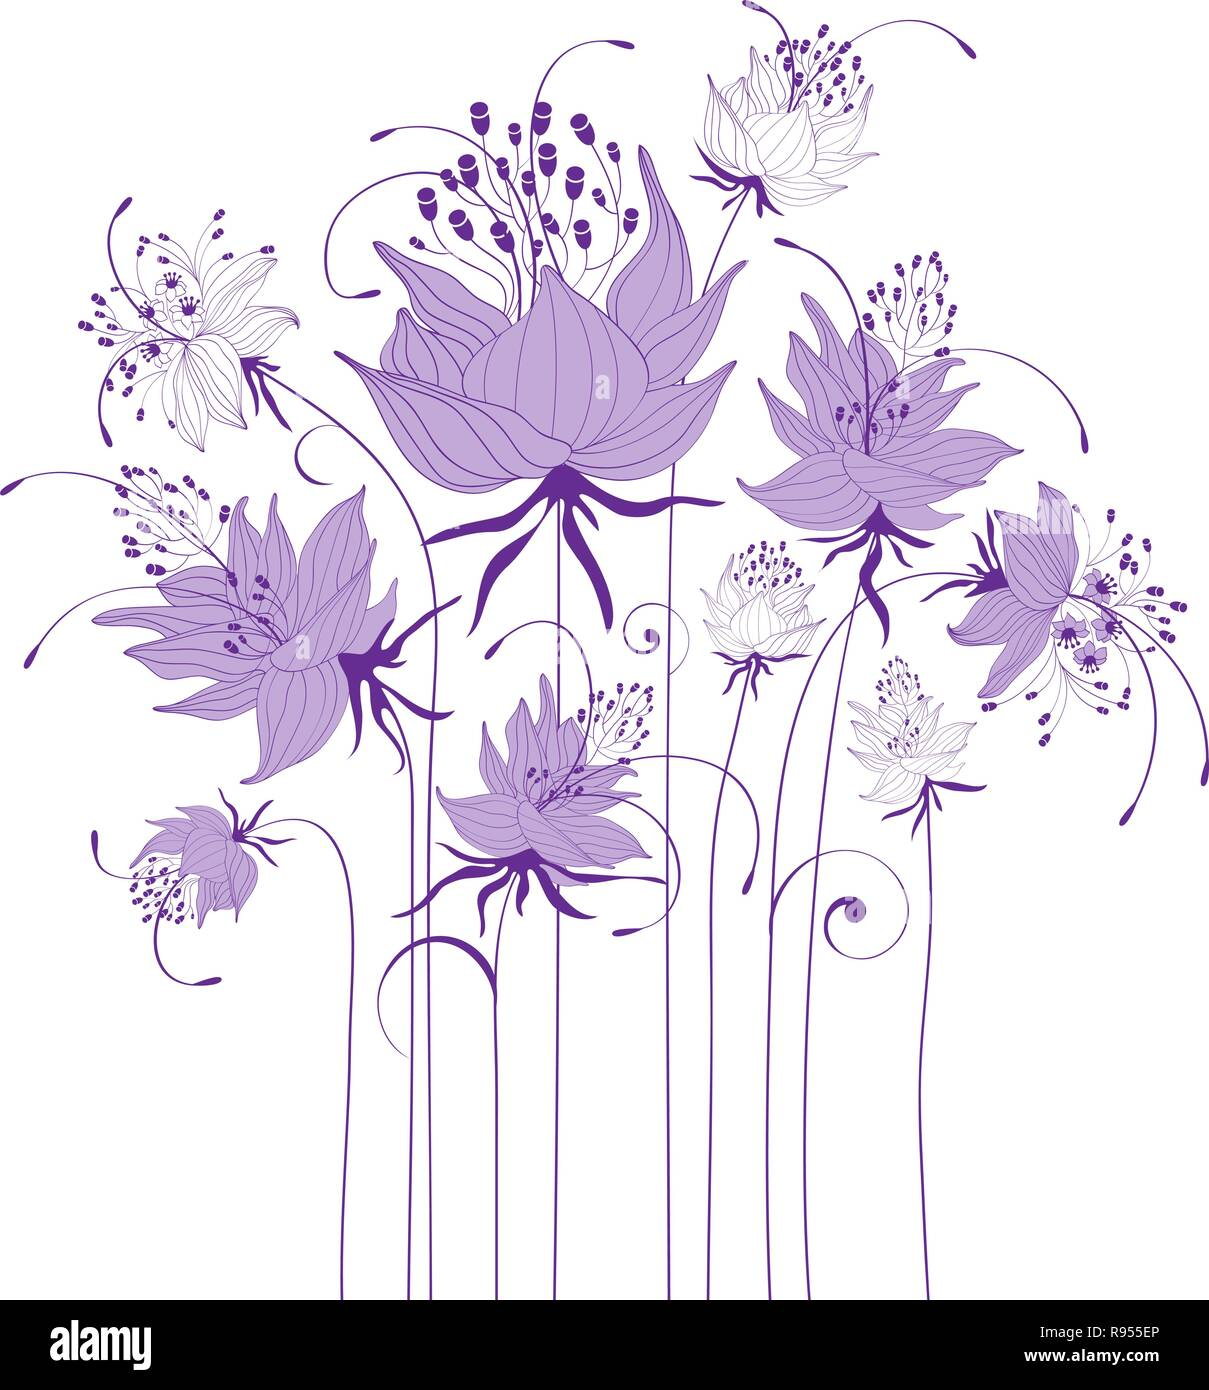 Floral design, stylized flowers - Stock Image